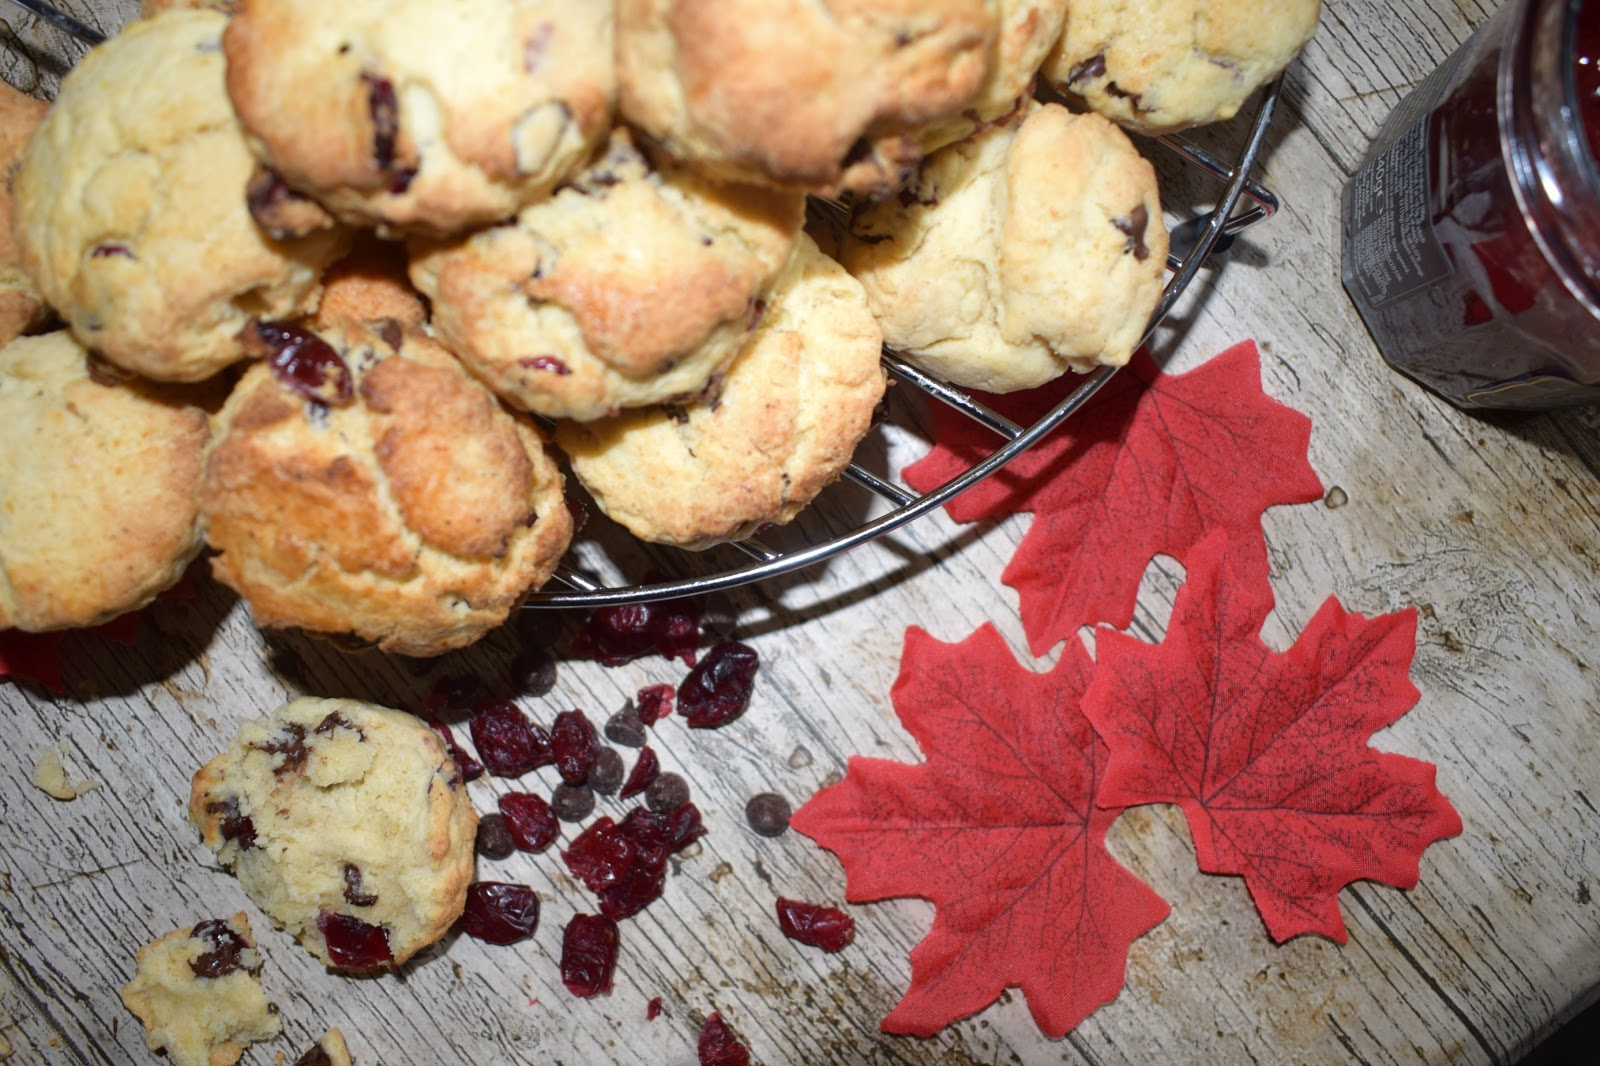 Cranberry and chocolate chip scones